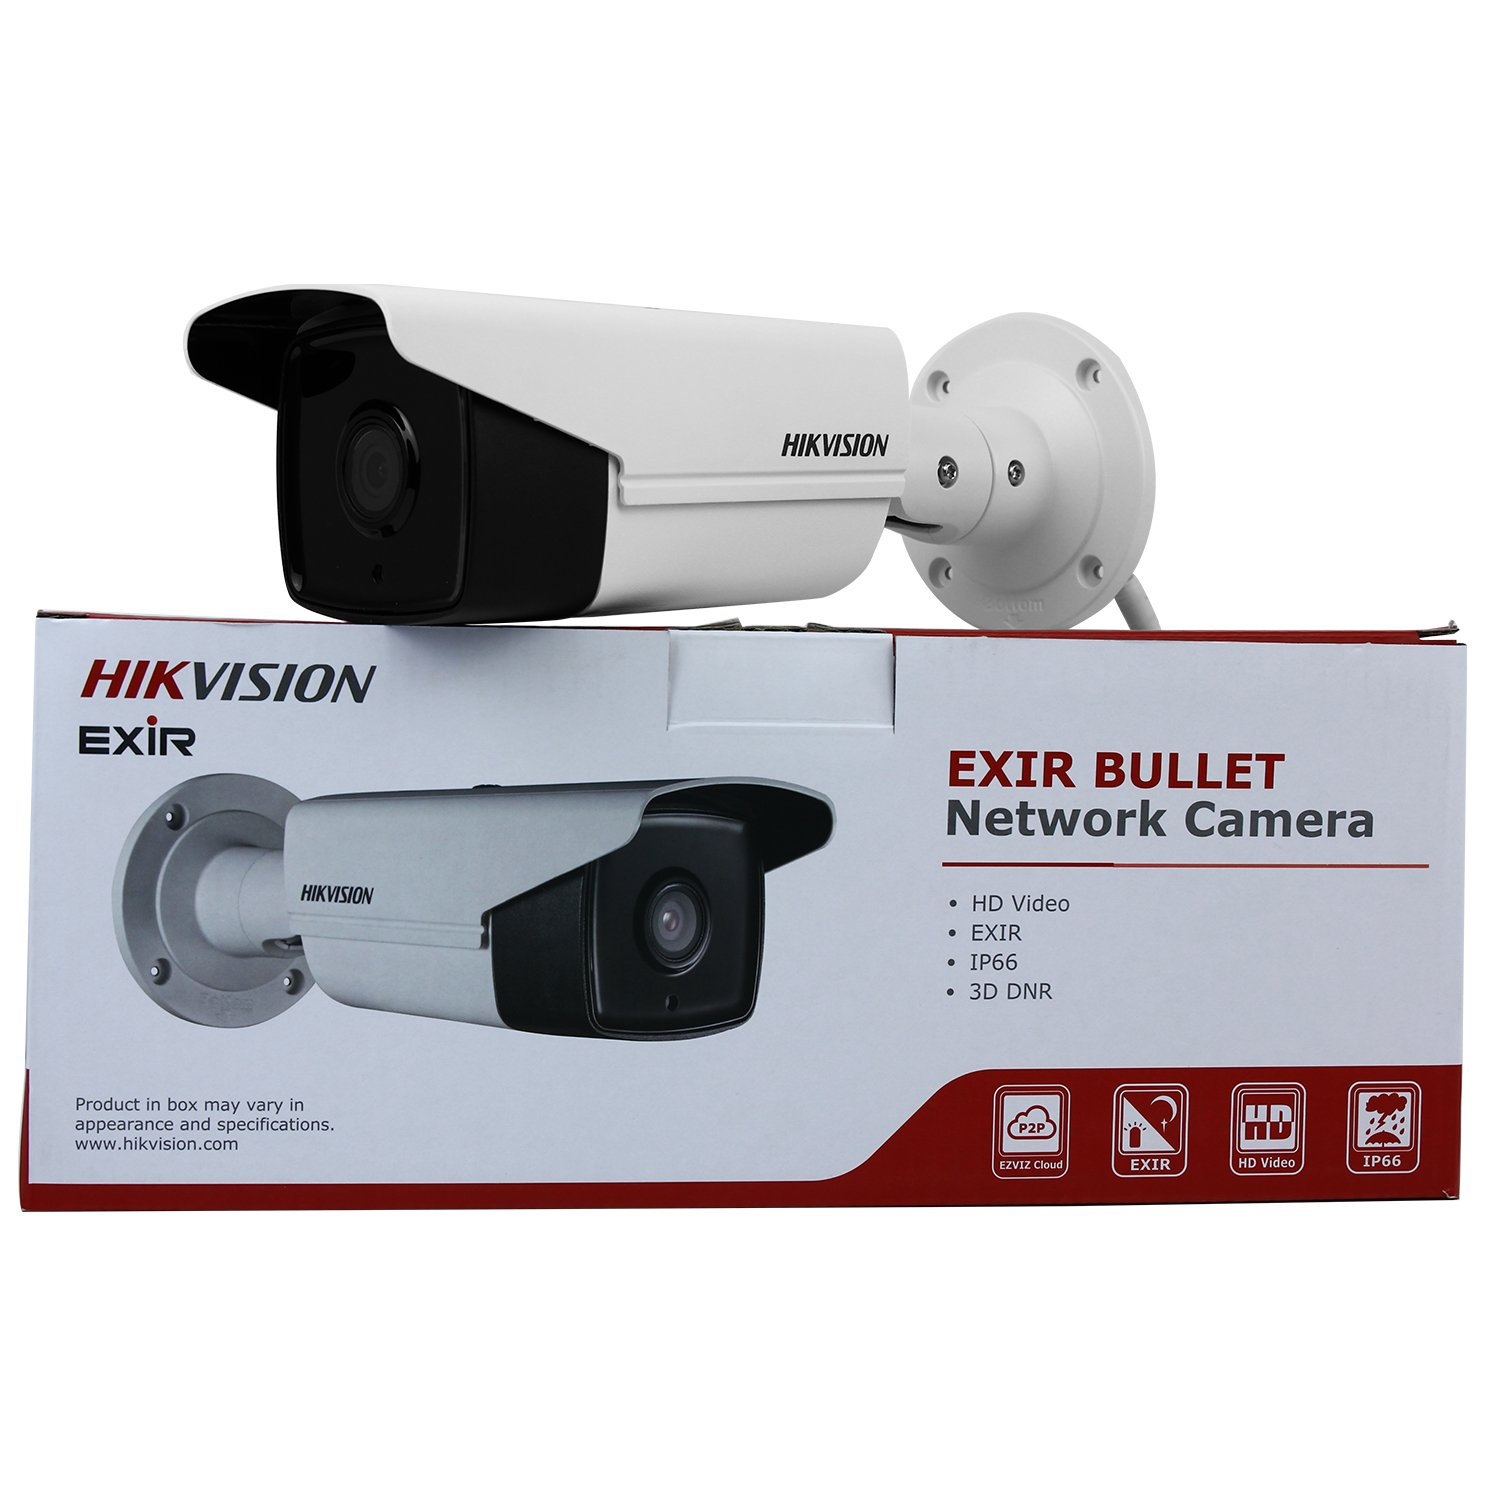 HIKVISION DS-2CD2T42WD-I5 4MP Outdoor 120dB WDR 3D DNR (Waterproof Day Night Motion Detection) 12V DC & PoE,6MM